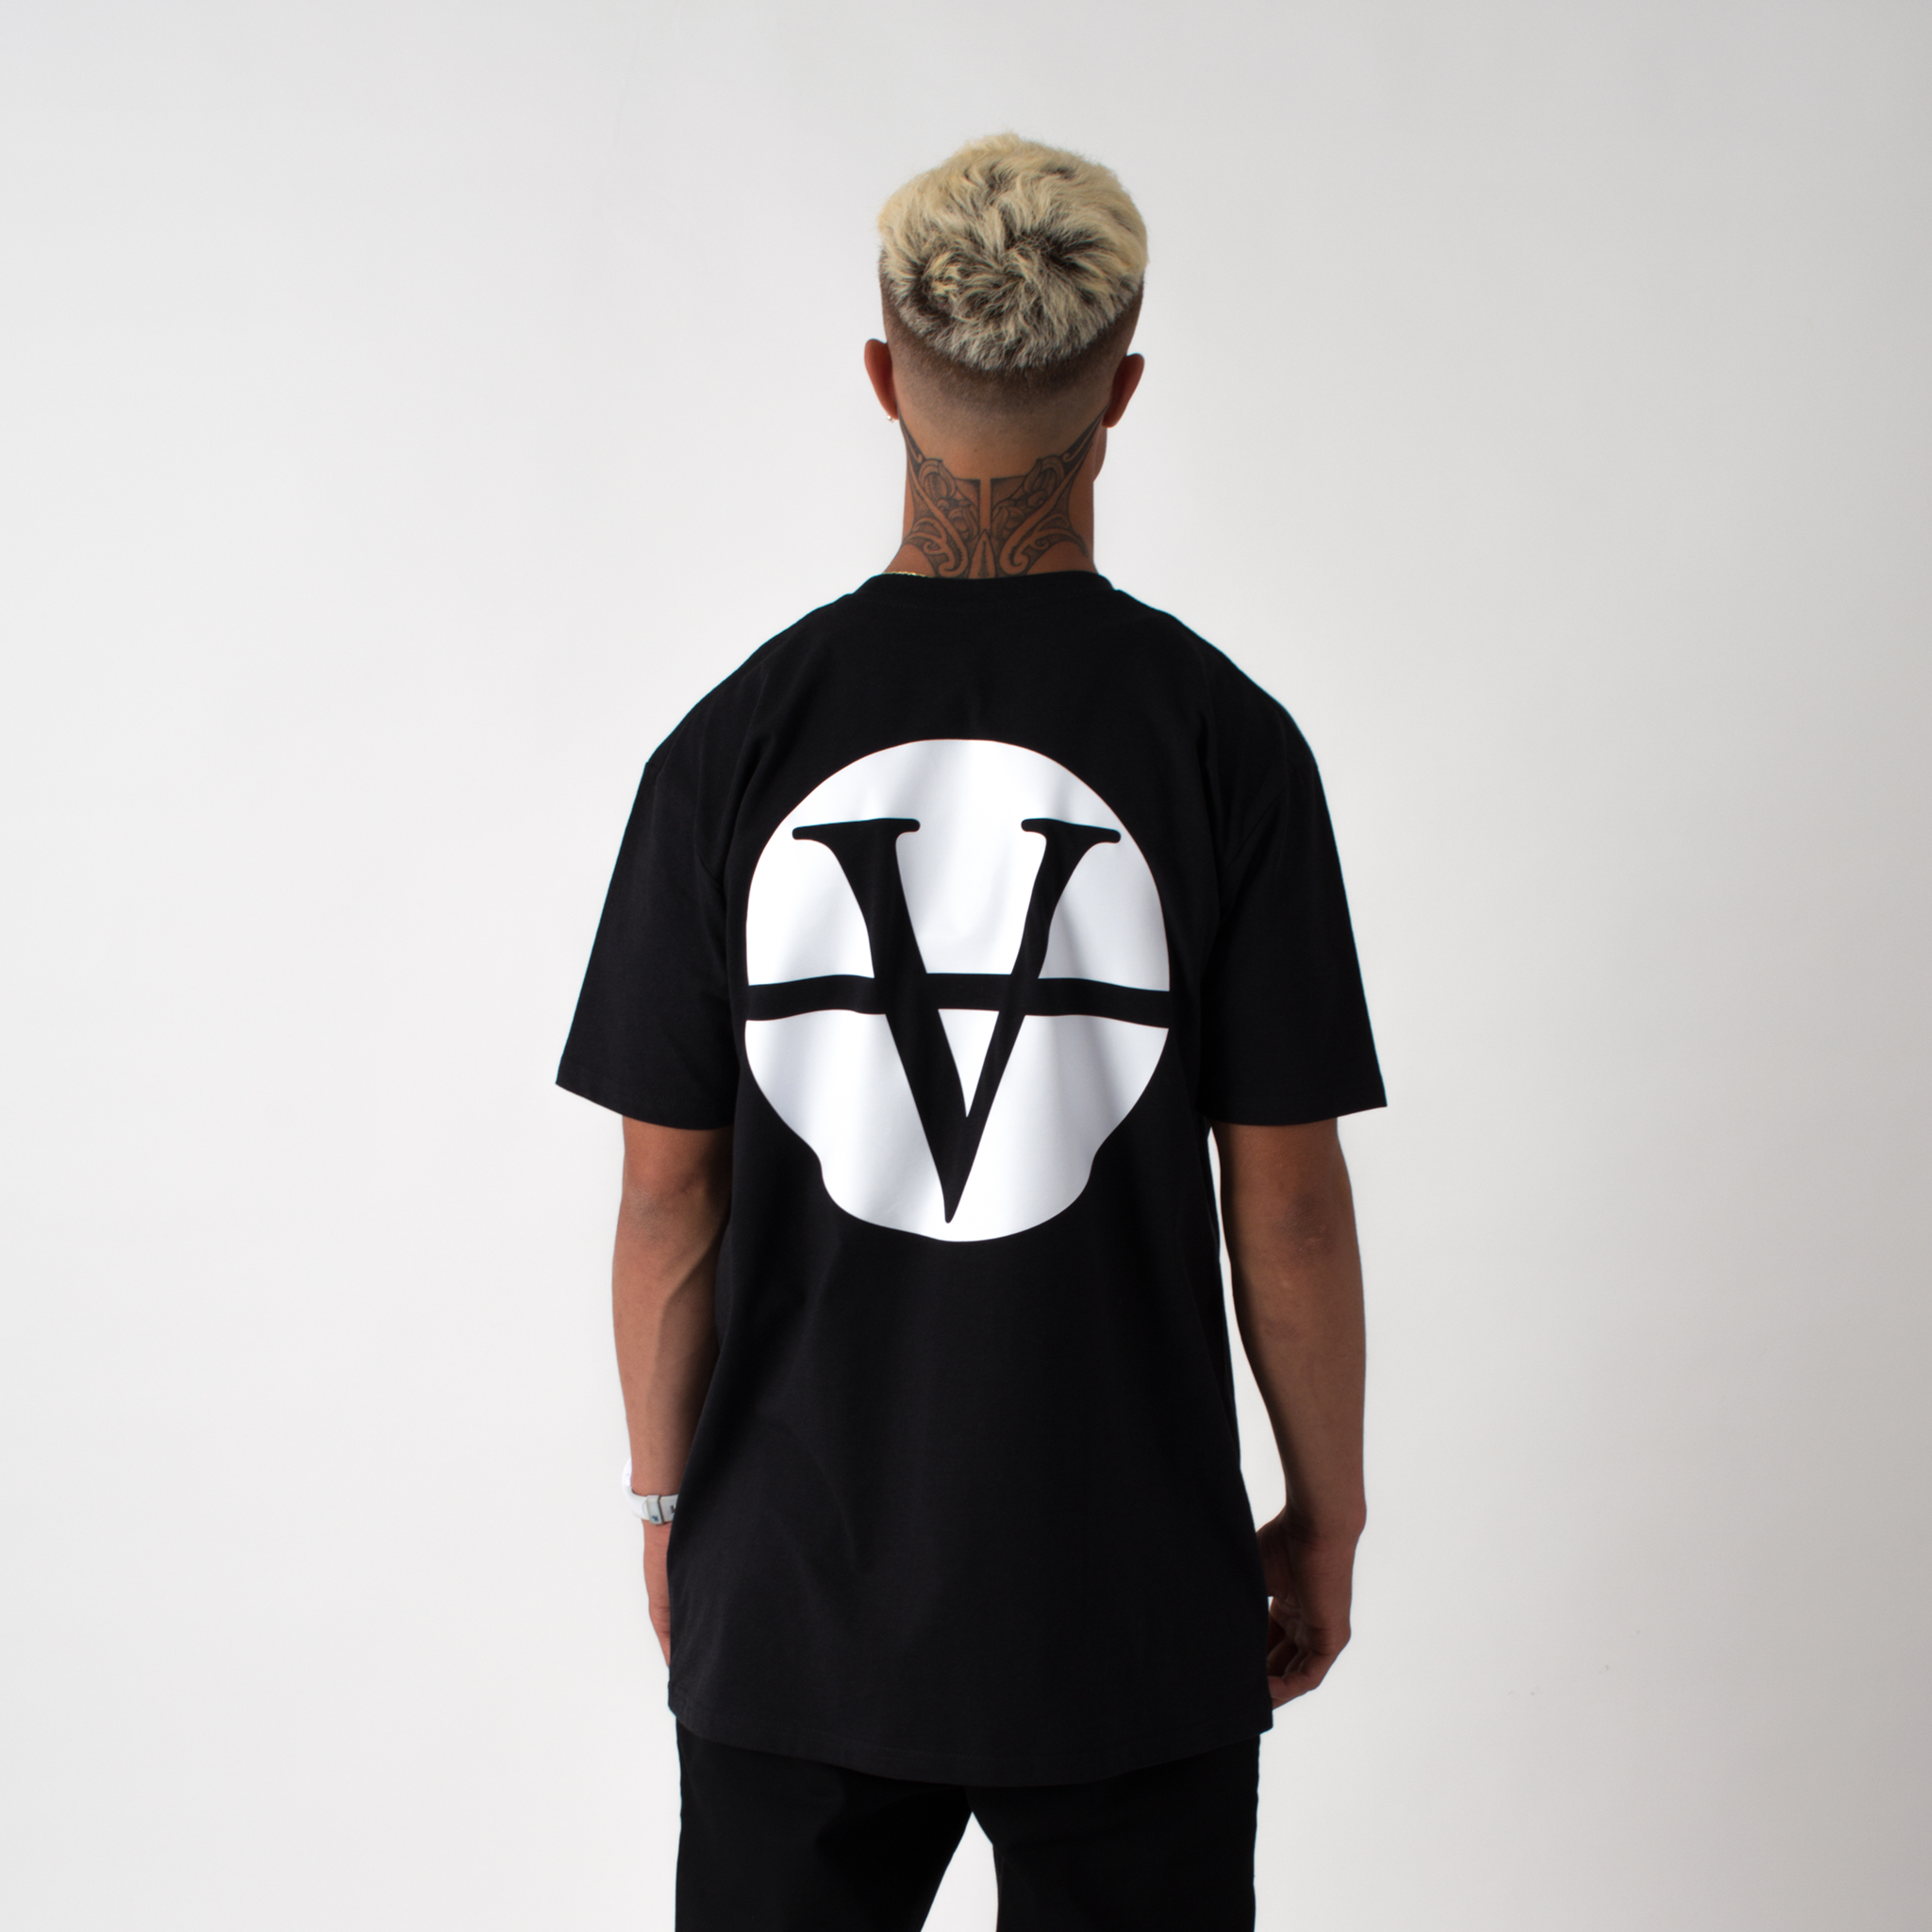 Mac Vicious outline t-shirt